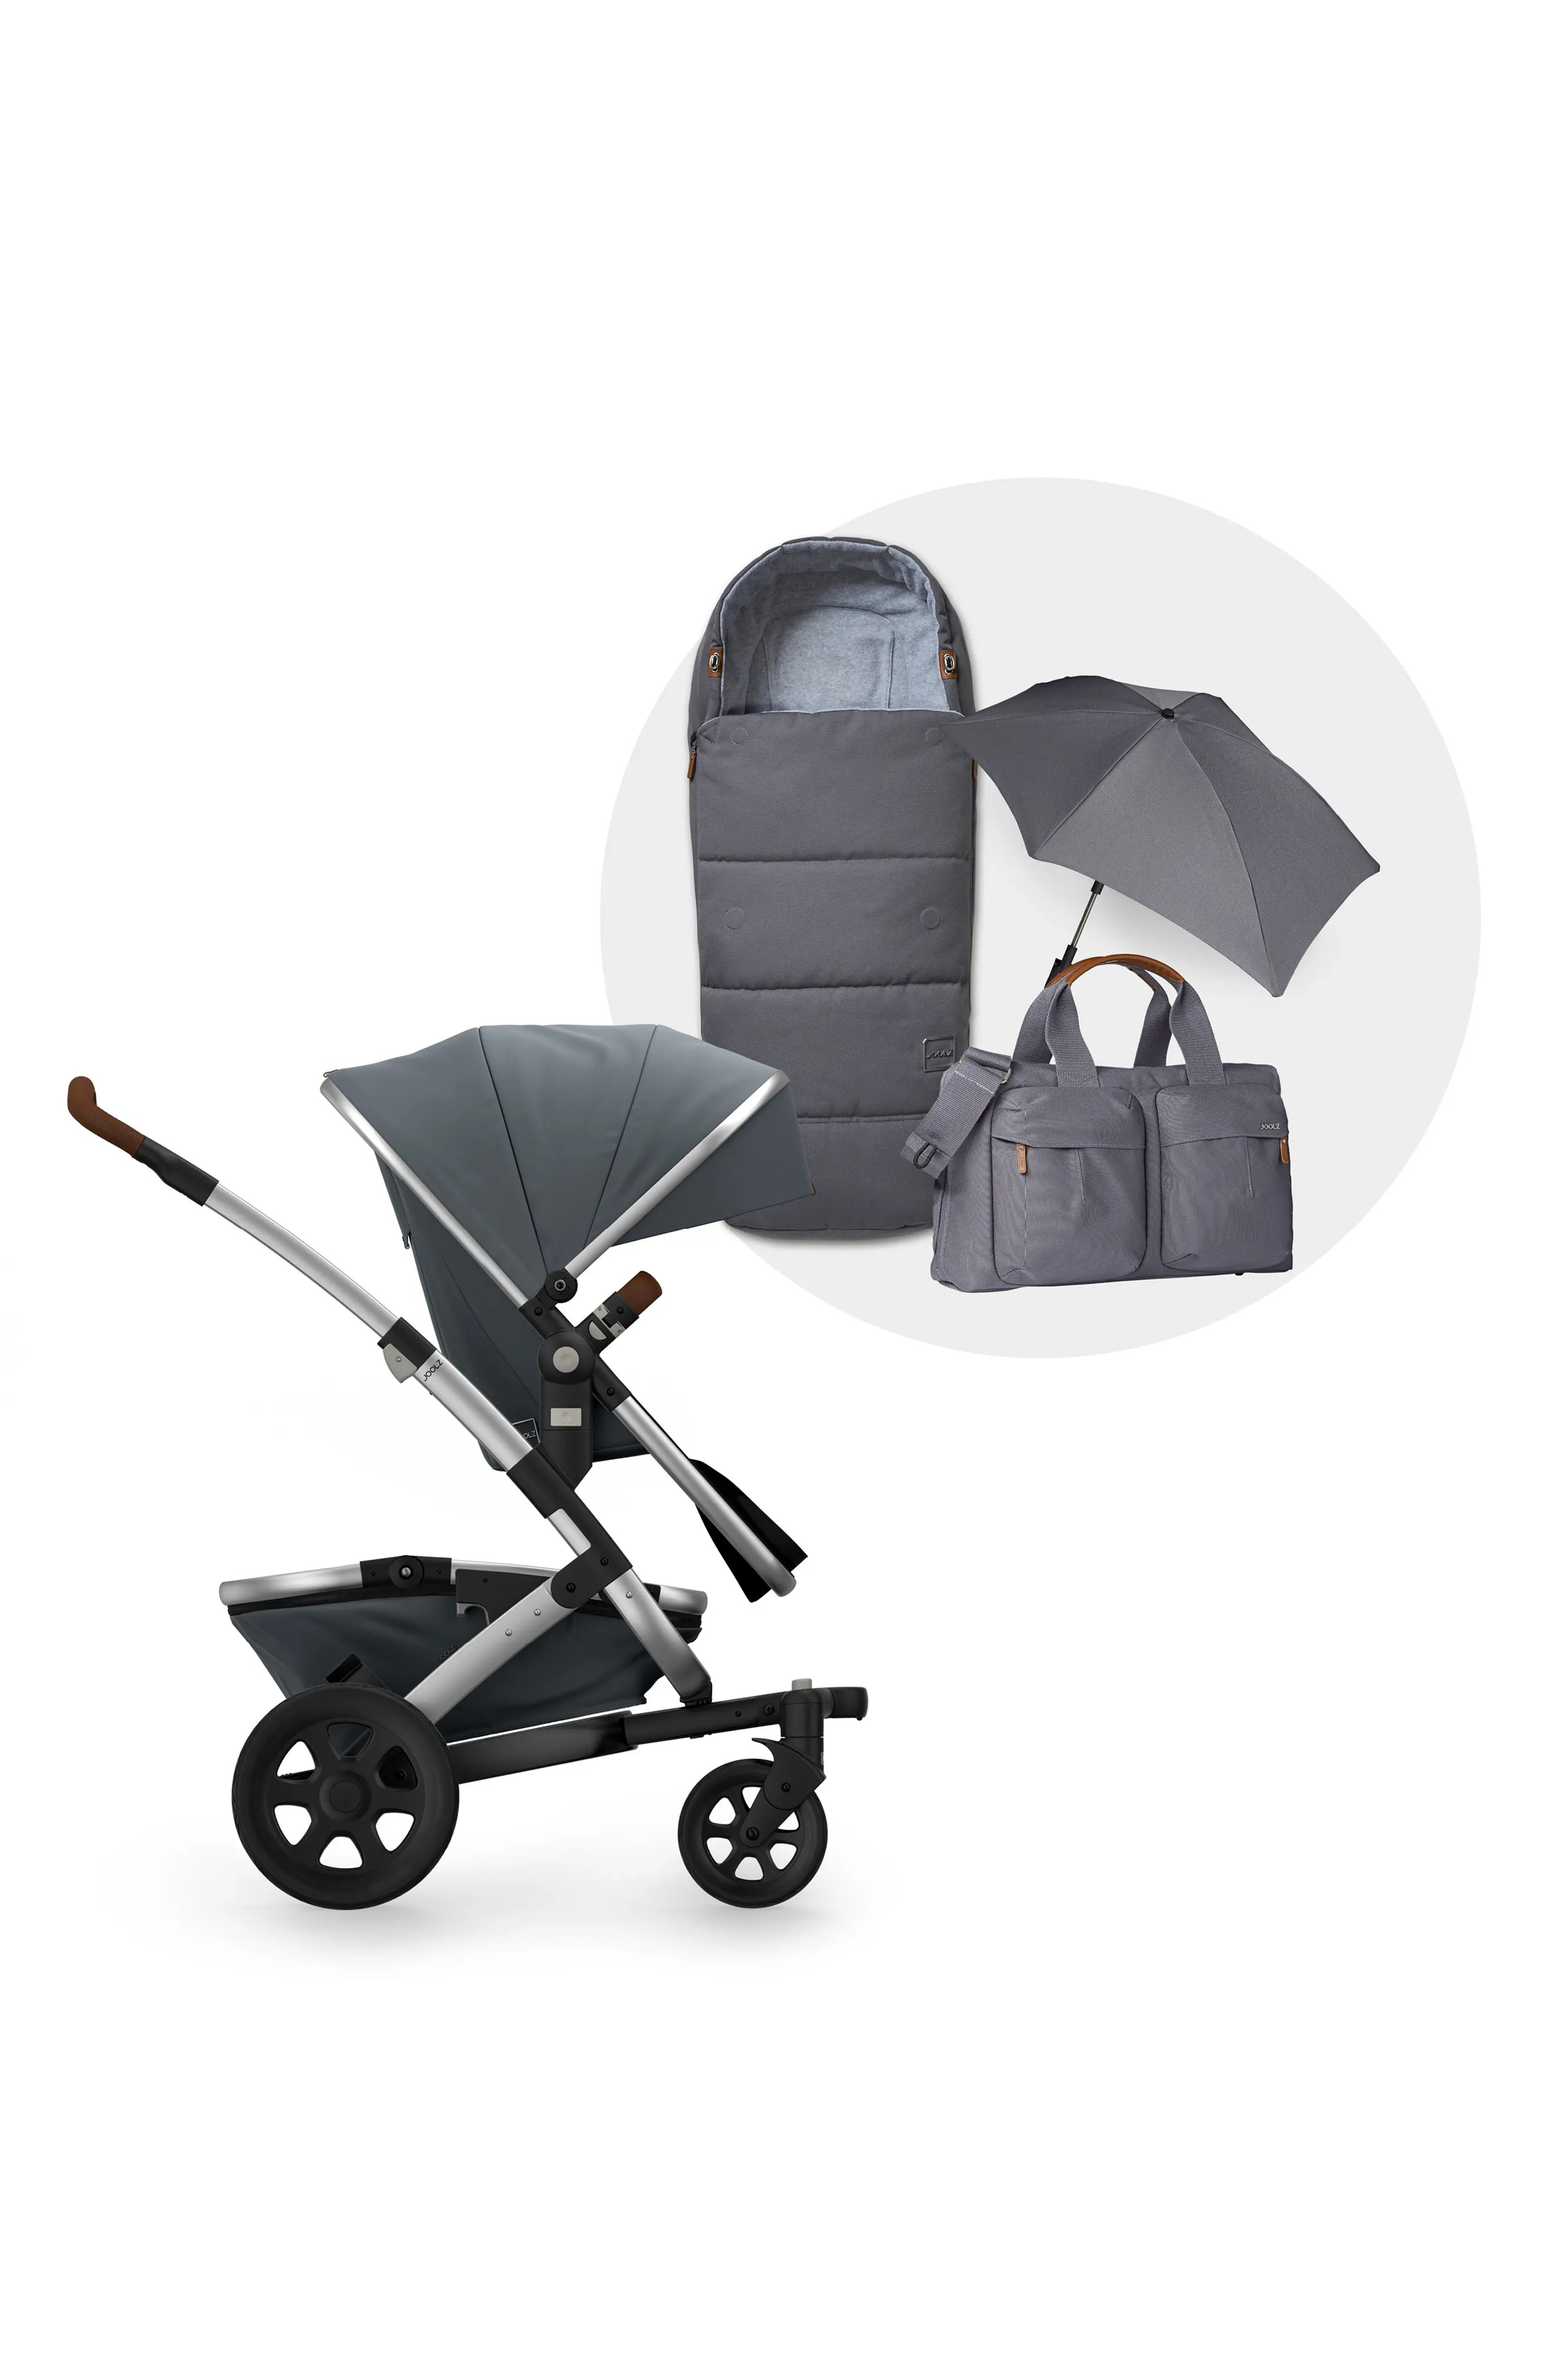 The Joolz Stroller Joolz Hub Earth Complete Stroller Accessories Bundle